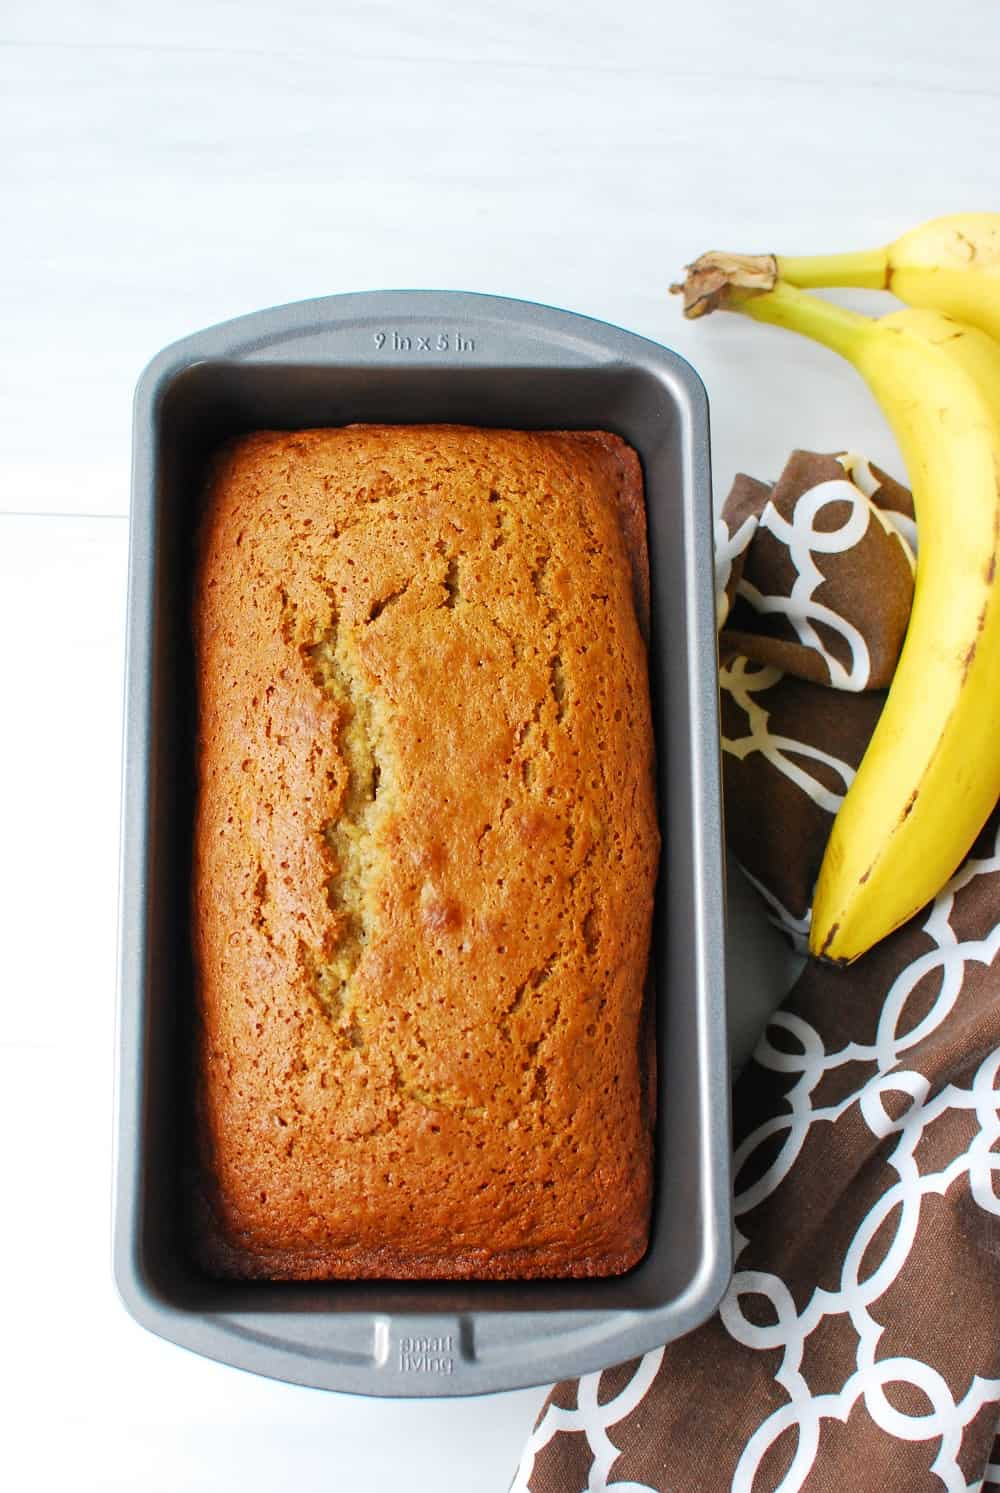 A loaf of dairy free banana bread in a loaf pan, just out of the oven